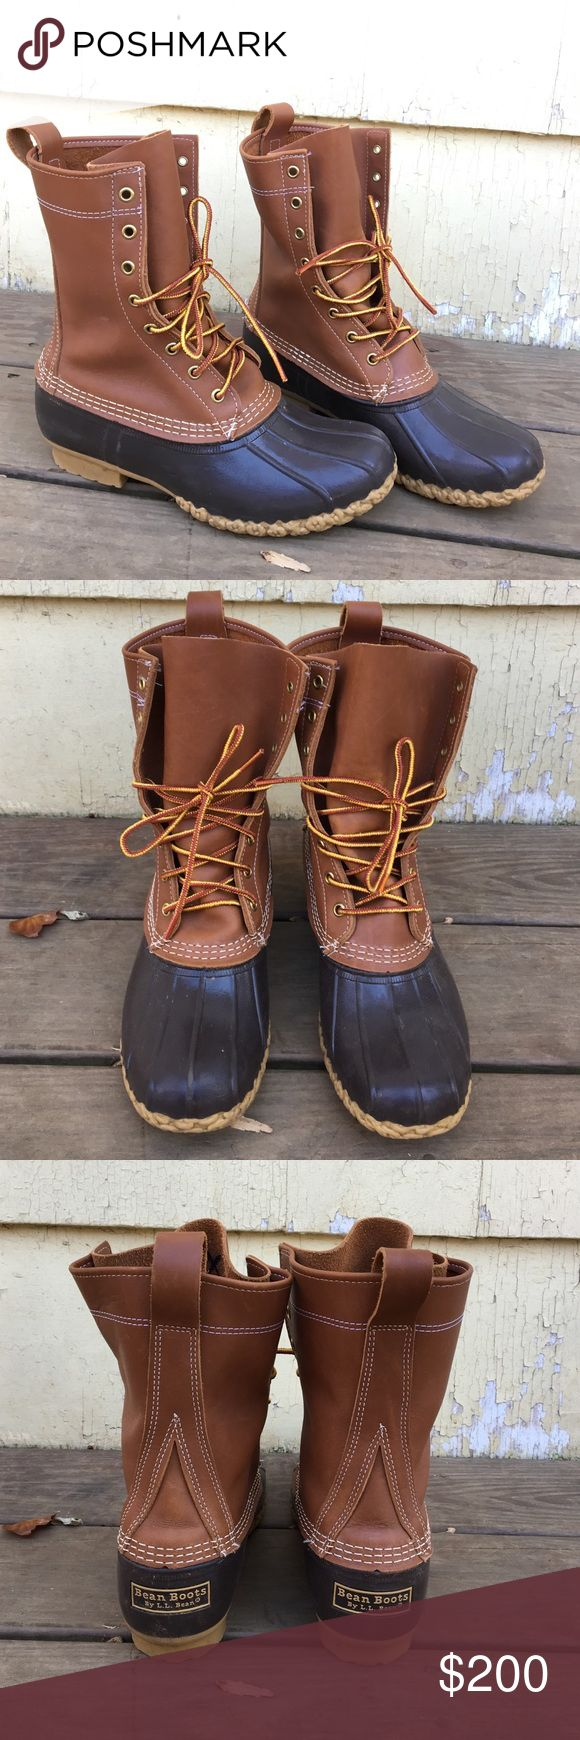 Women's L.L. Bean Boots Women's L.L. Bean Boots. Size 8. Medium width. Worn only once. Like new. These are on the taller side. About 10 inches high. Thinsulate lining. Reasonable offers would be considered. Lastly, NO TRADES! L.L. Bean Shoes Winter & Rain Boots